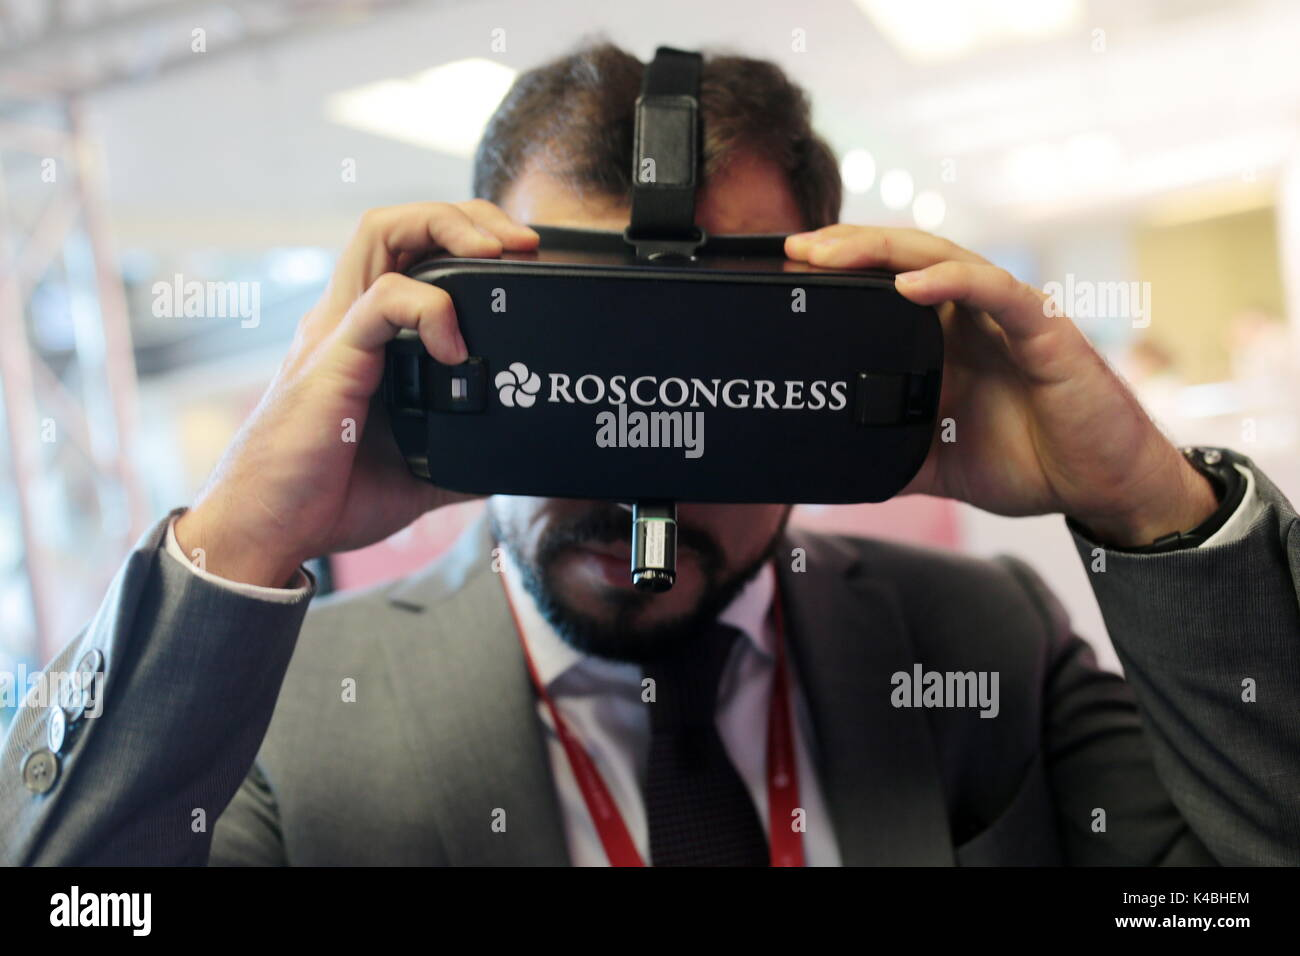 Vladivostok, Russia. 6th Sep, 2017. A mna in a VR headset seen at Sberbank stand at the 2017 Eastern Economic Forum (EEF) at Far Eastern Federal University on Russky Island. Credit: Sergei Bobylev/TASS/Alamy Live News - Stock Image